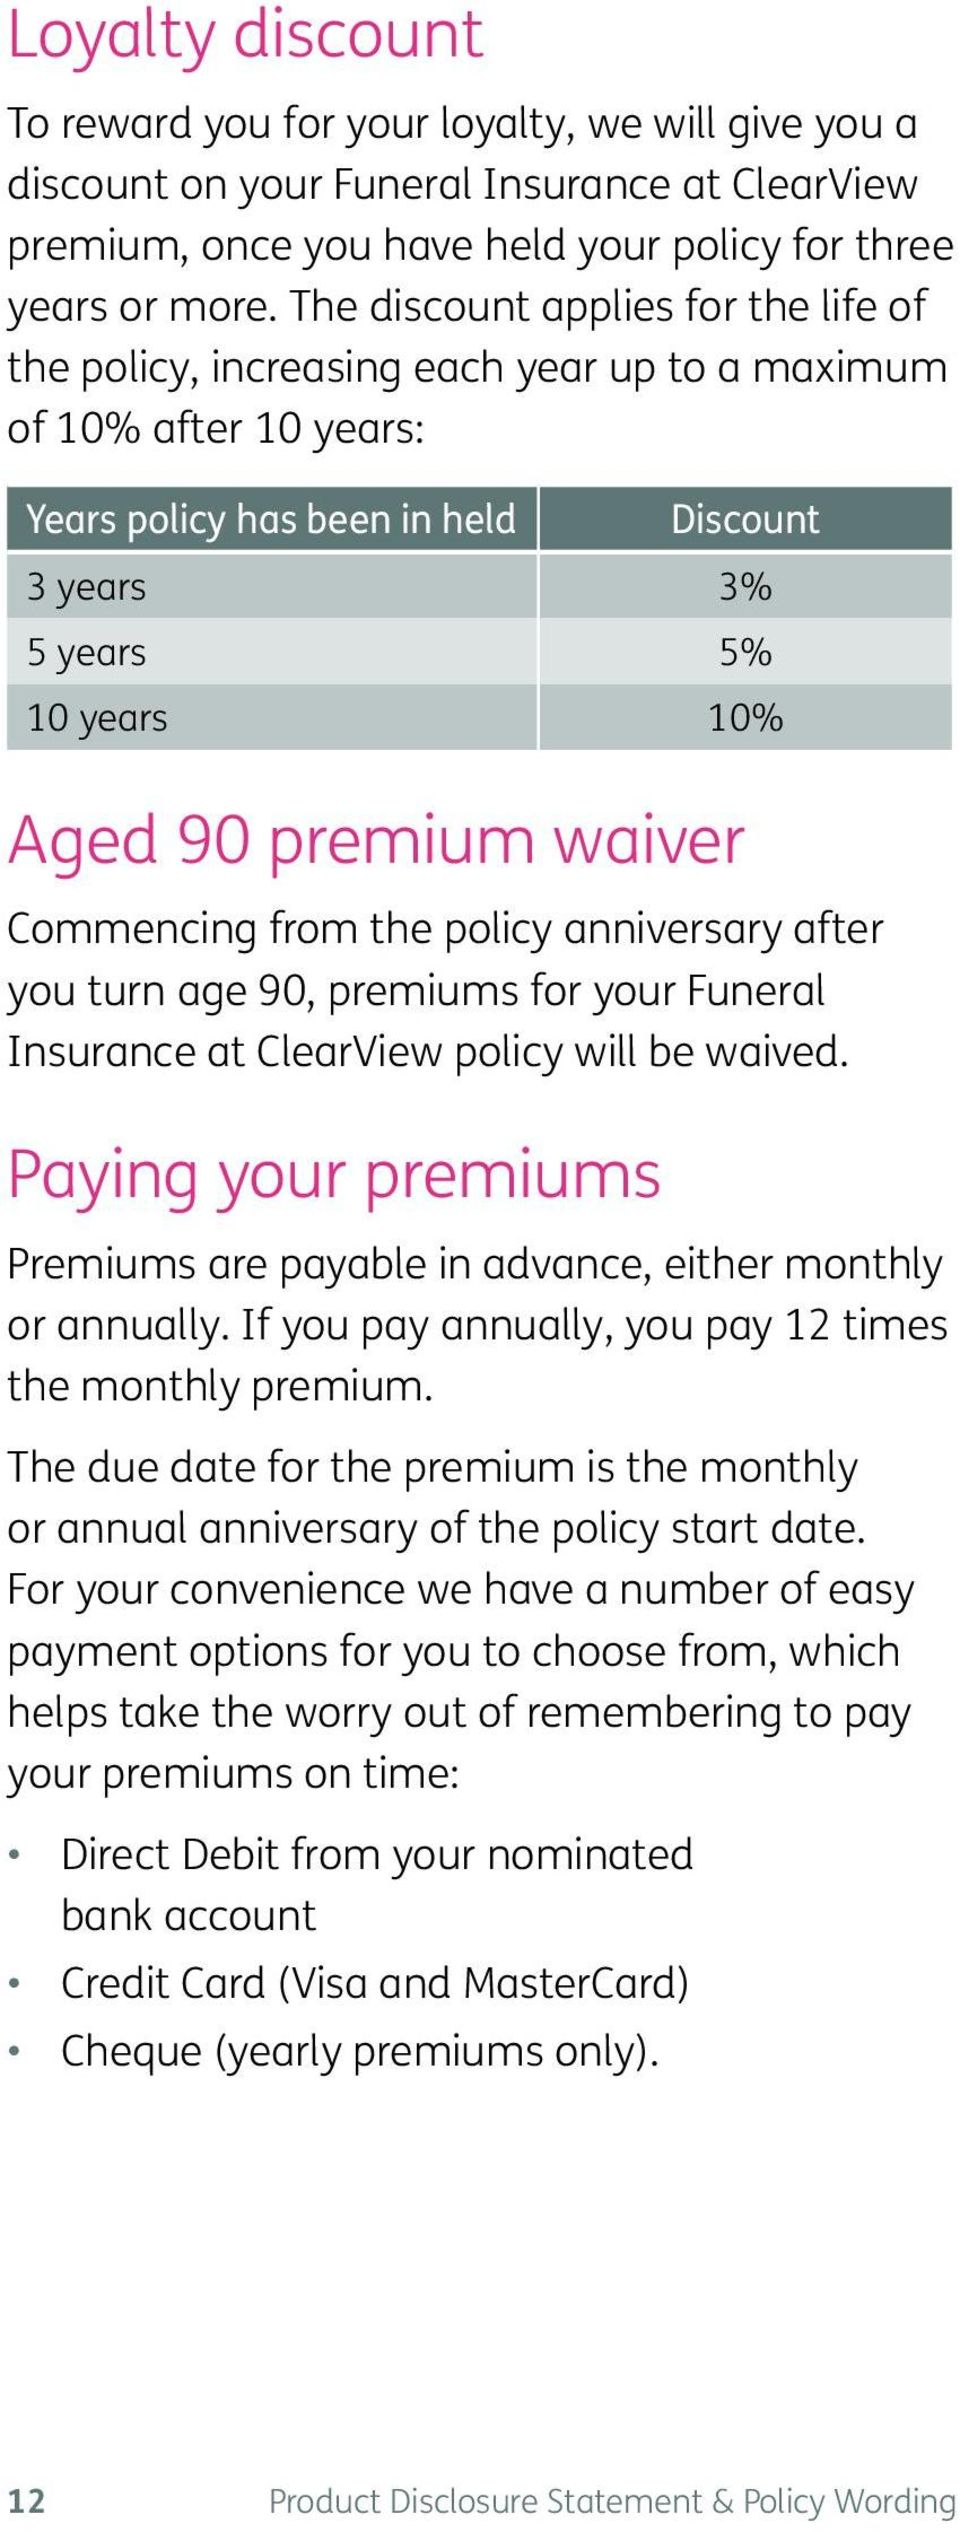 waiver Commencing from the policy anniversary after you turn age 90, premiums for your Funeral Insurance at ClearView policy will be waived.